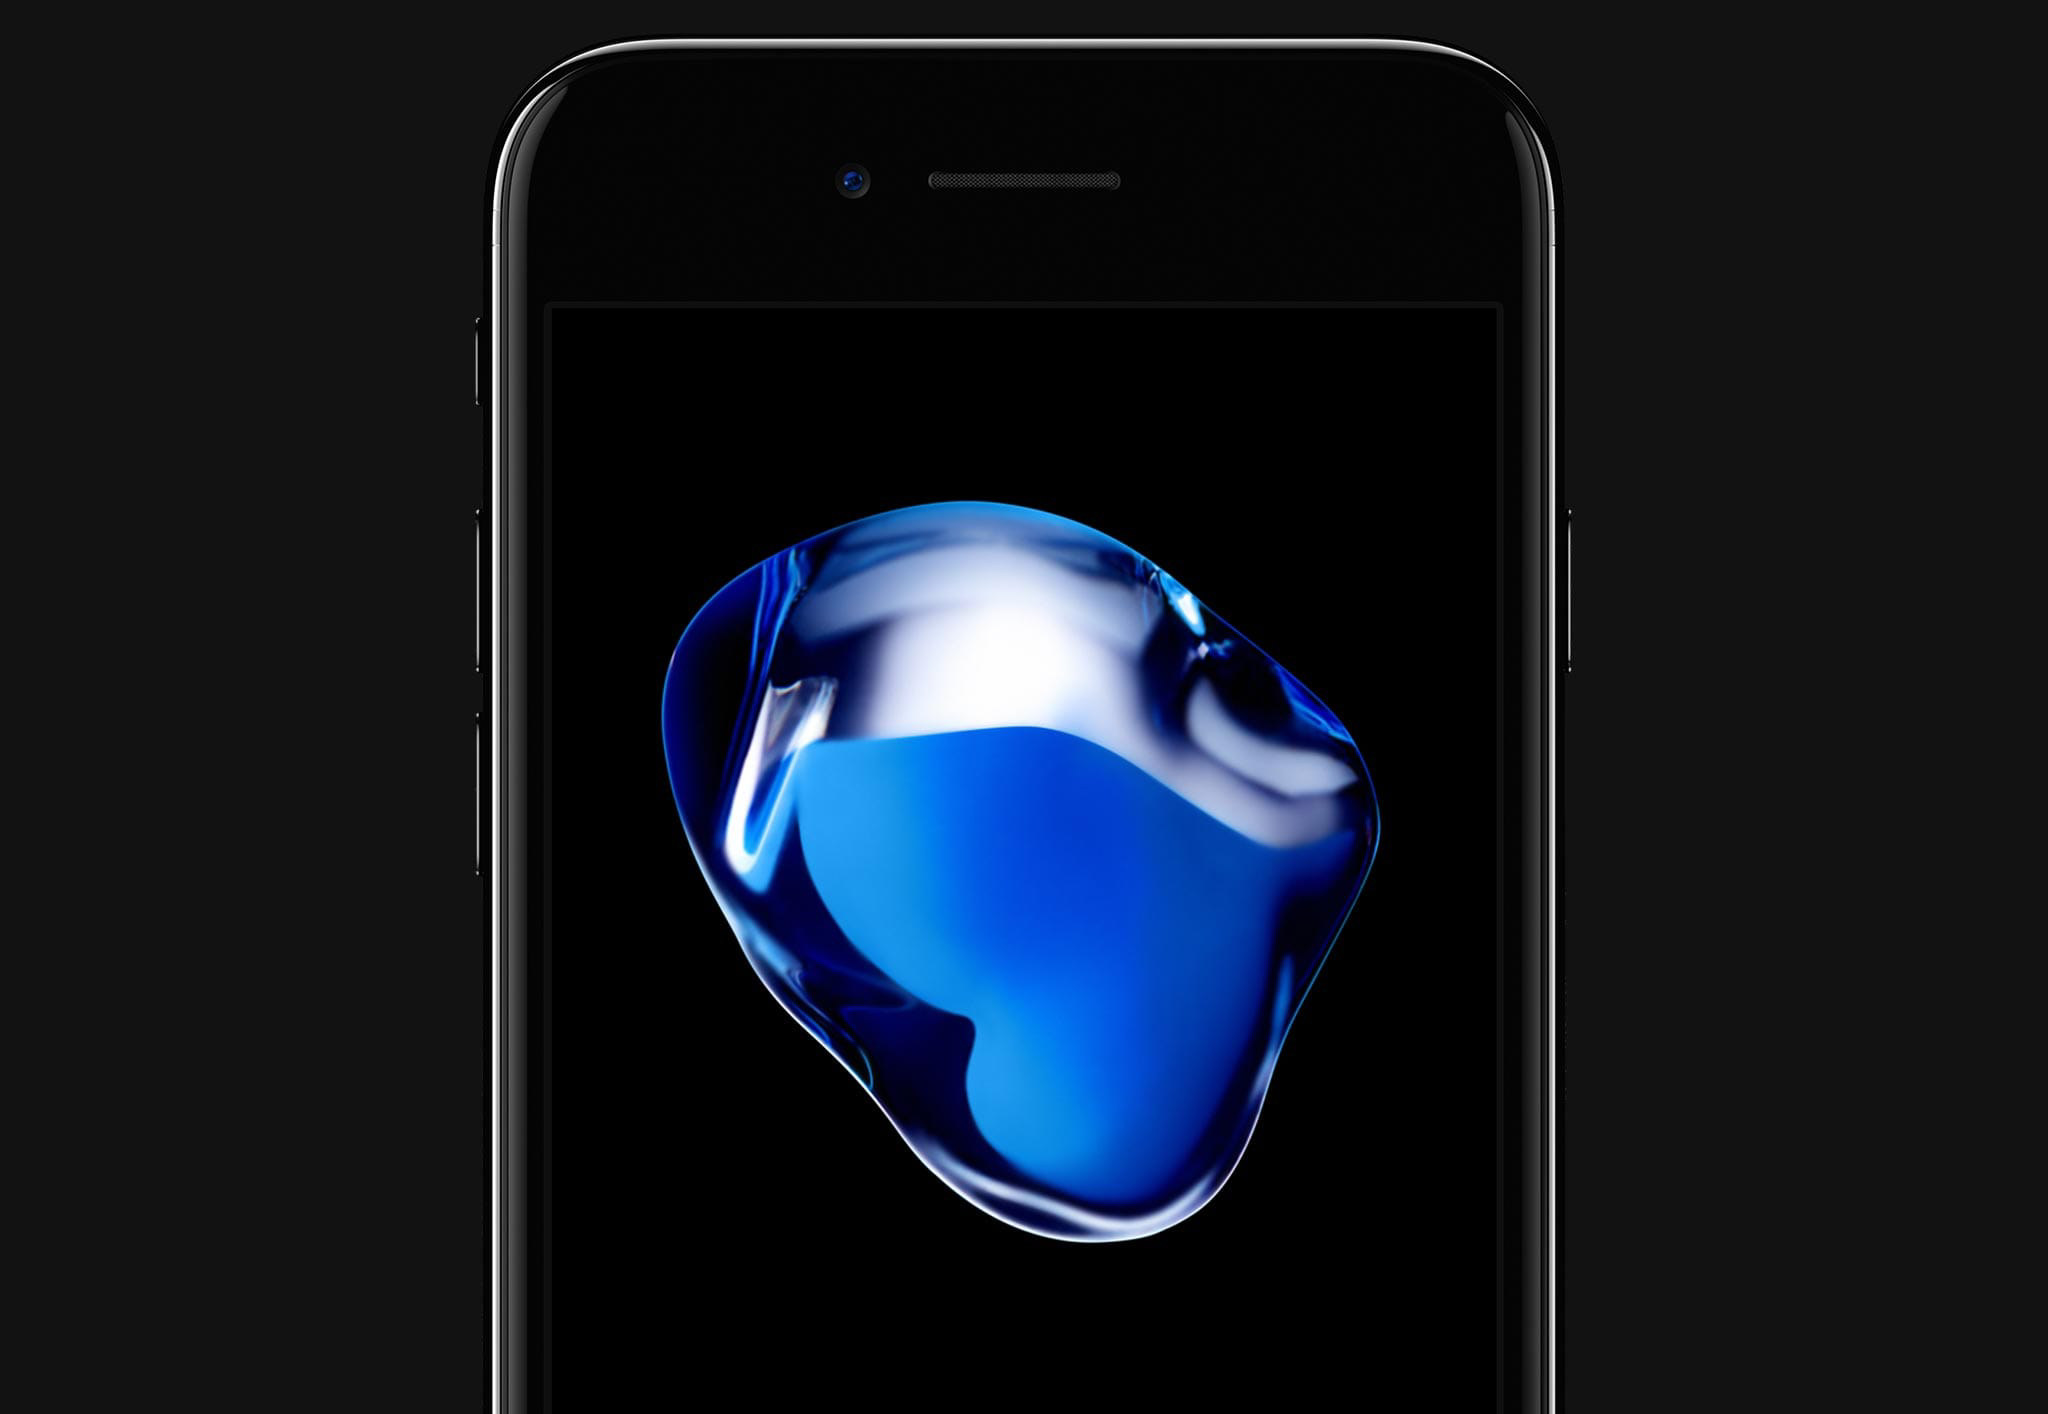 Apple Iphone 7 Content Selfridges 128gb Black Grs International And Plus Are Splash Water Dust Resistant Were Tested Under Controlled Laboratory Conditions With A Rating Of Ip67 Iec